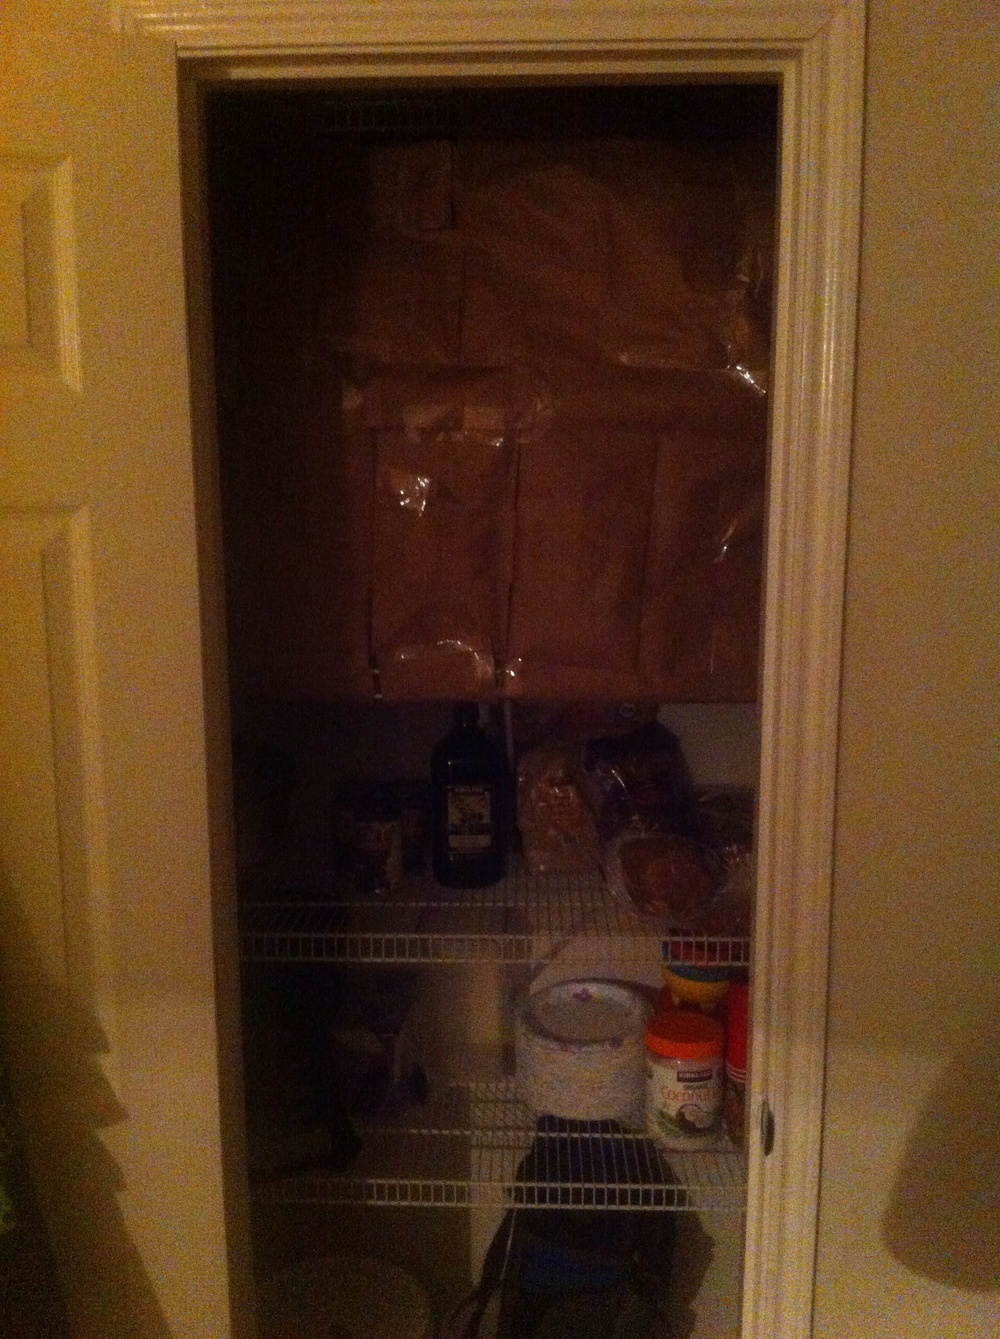 Barricaded Pantry